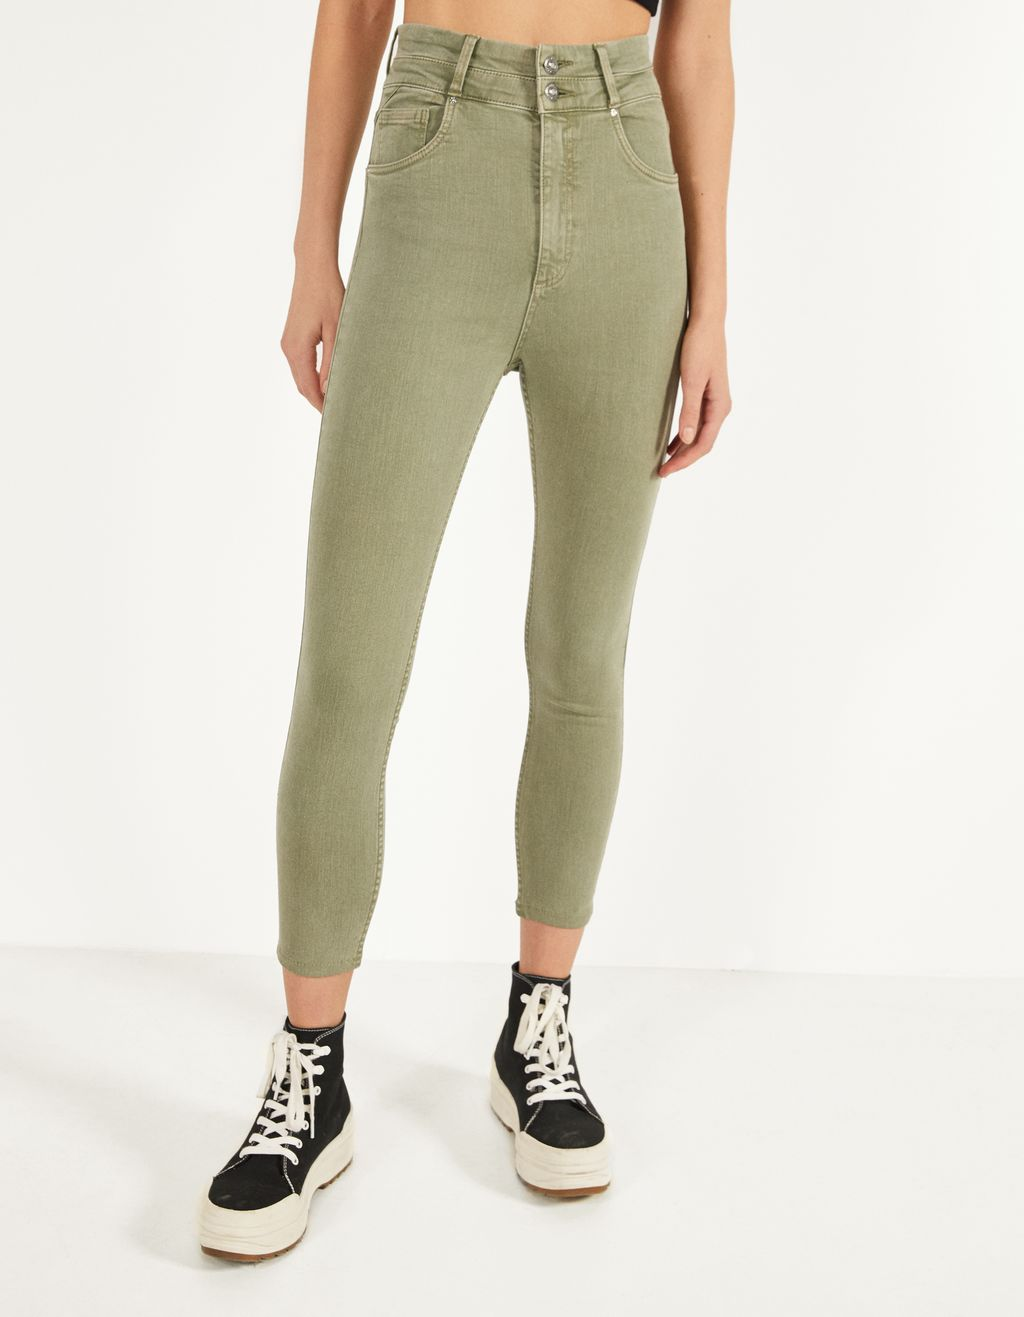 Super High-Rise pants